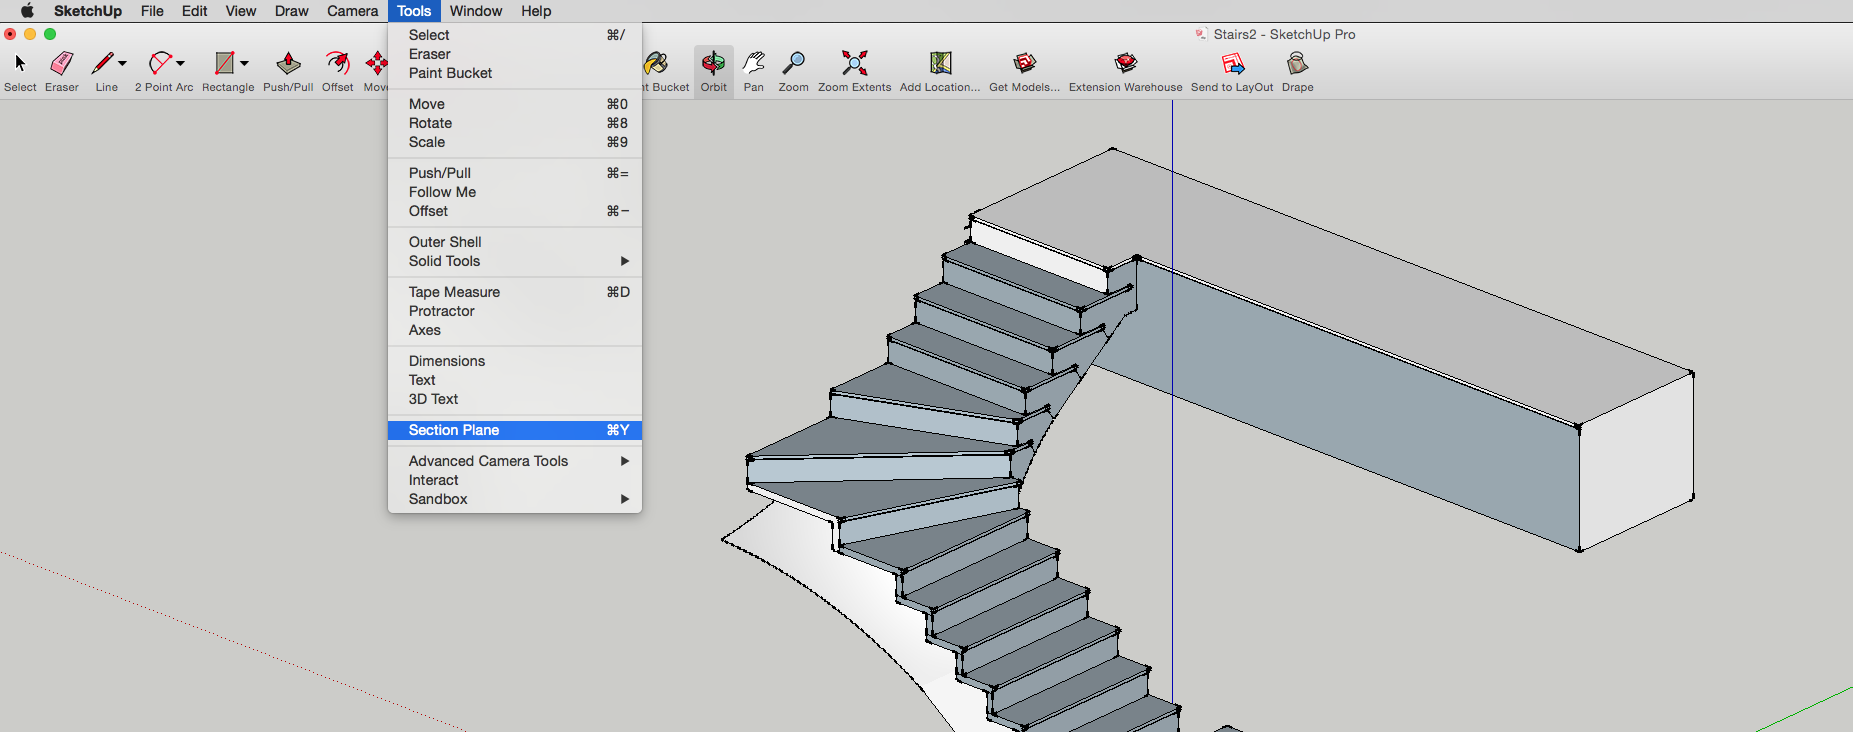 Drawing Smooth Lines In Autocad : Laser create sketchup to autocad